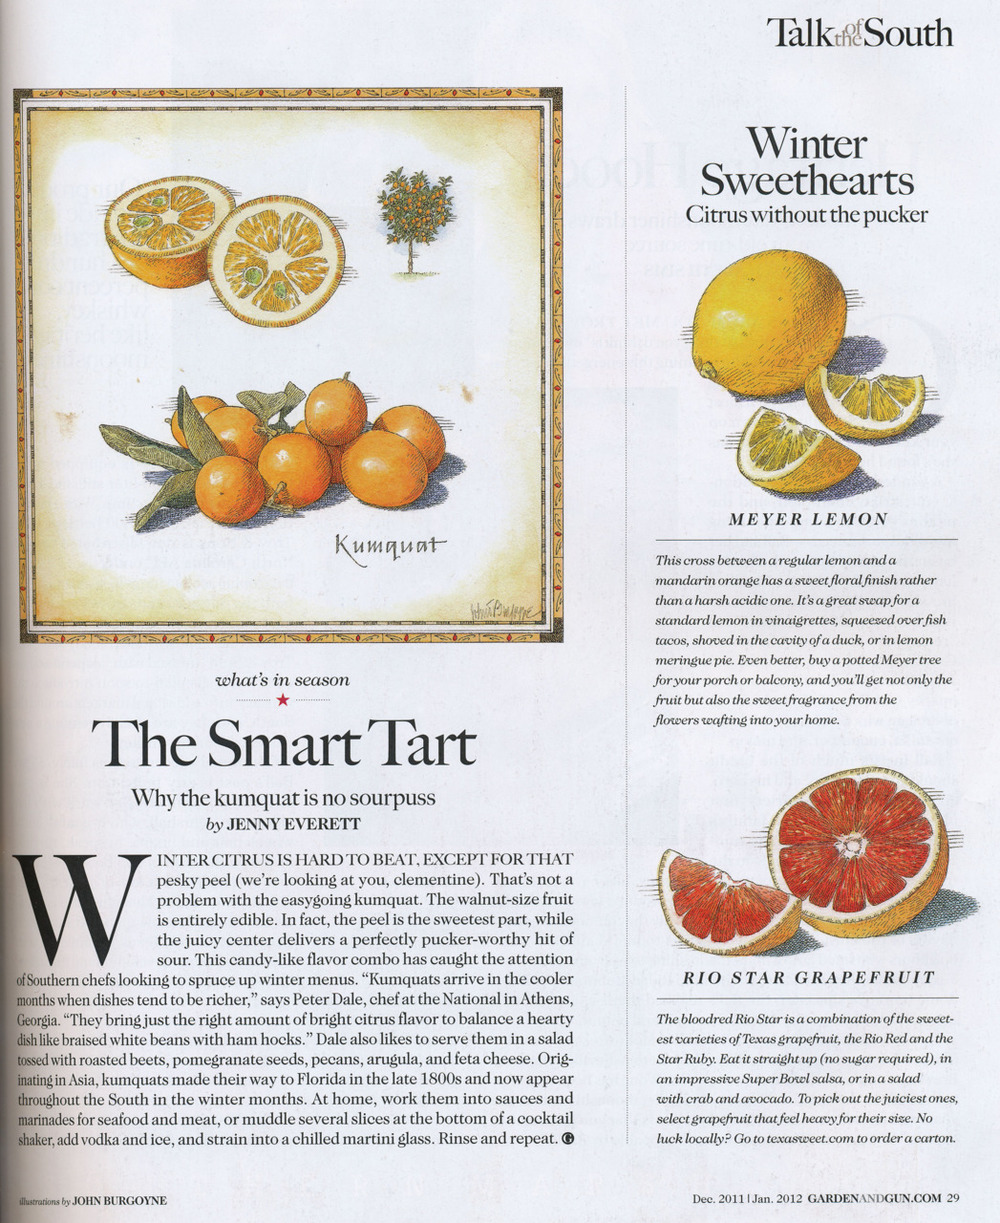 "Chef Dale gets a word in about kumquats as a welcome winter citrus in this month's   Garden and Gun  , Dec 2011/Jan 2012     { ""Kumquats arrive in the cooler months when dishes tend to be richer,"" says Peter Dale, chef at The National in Athens, Georgia. ""They bring just the right amount of bright citrus flavor to balance a hearty dish like braised white beans with ham hocks."" Dale also likes to serve them in a salad tossed with roasted beets, pomegranate seeds, pecans, arugula, and feta cheese. }    Look out for this beet and kumquat salad on our menu, as well as kumquats served with fish and other hearty winter dishes in the upcoming weeks."